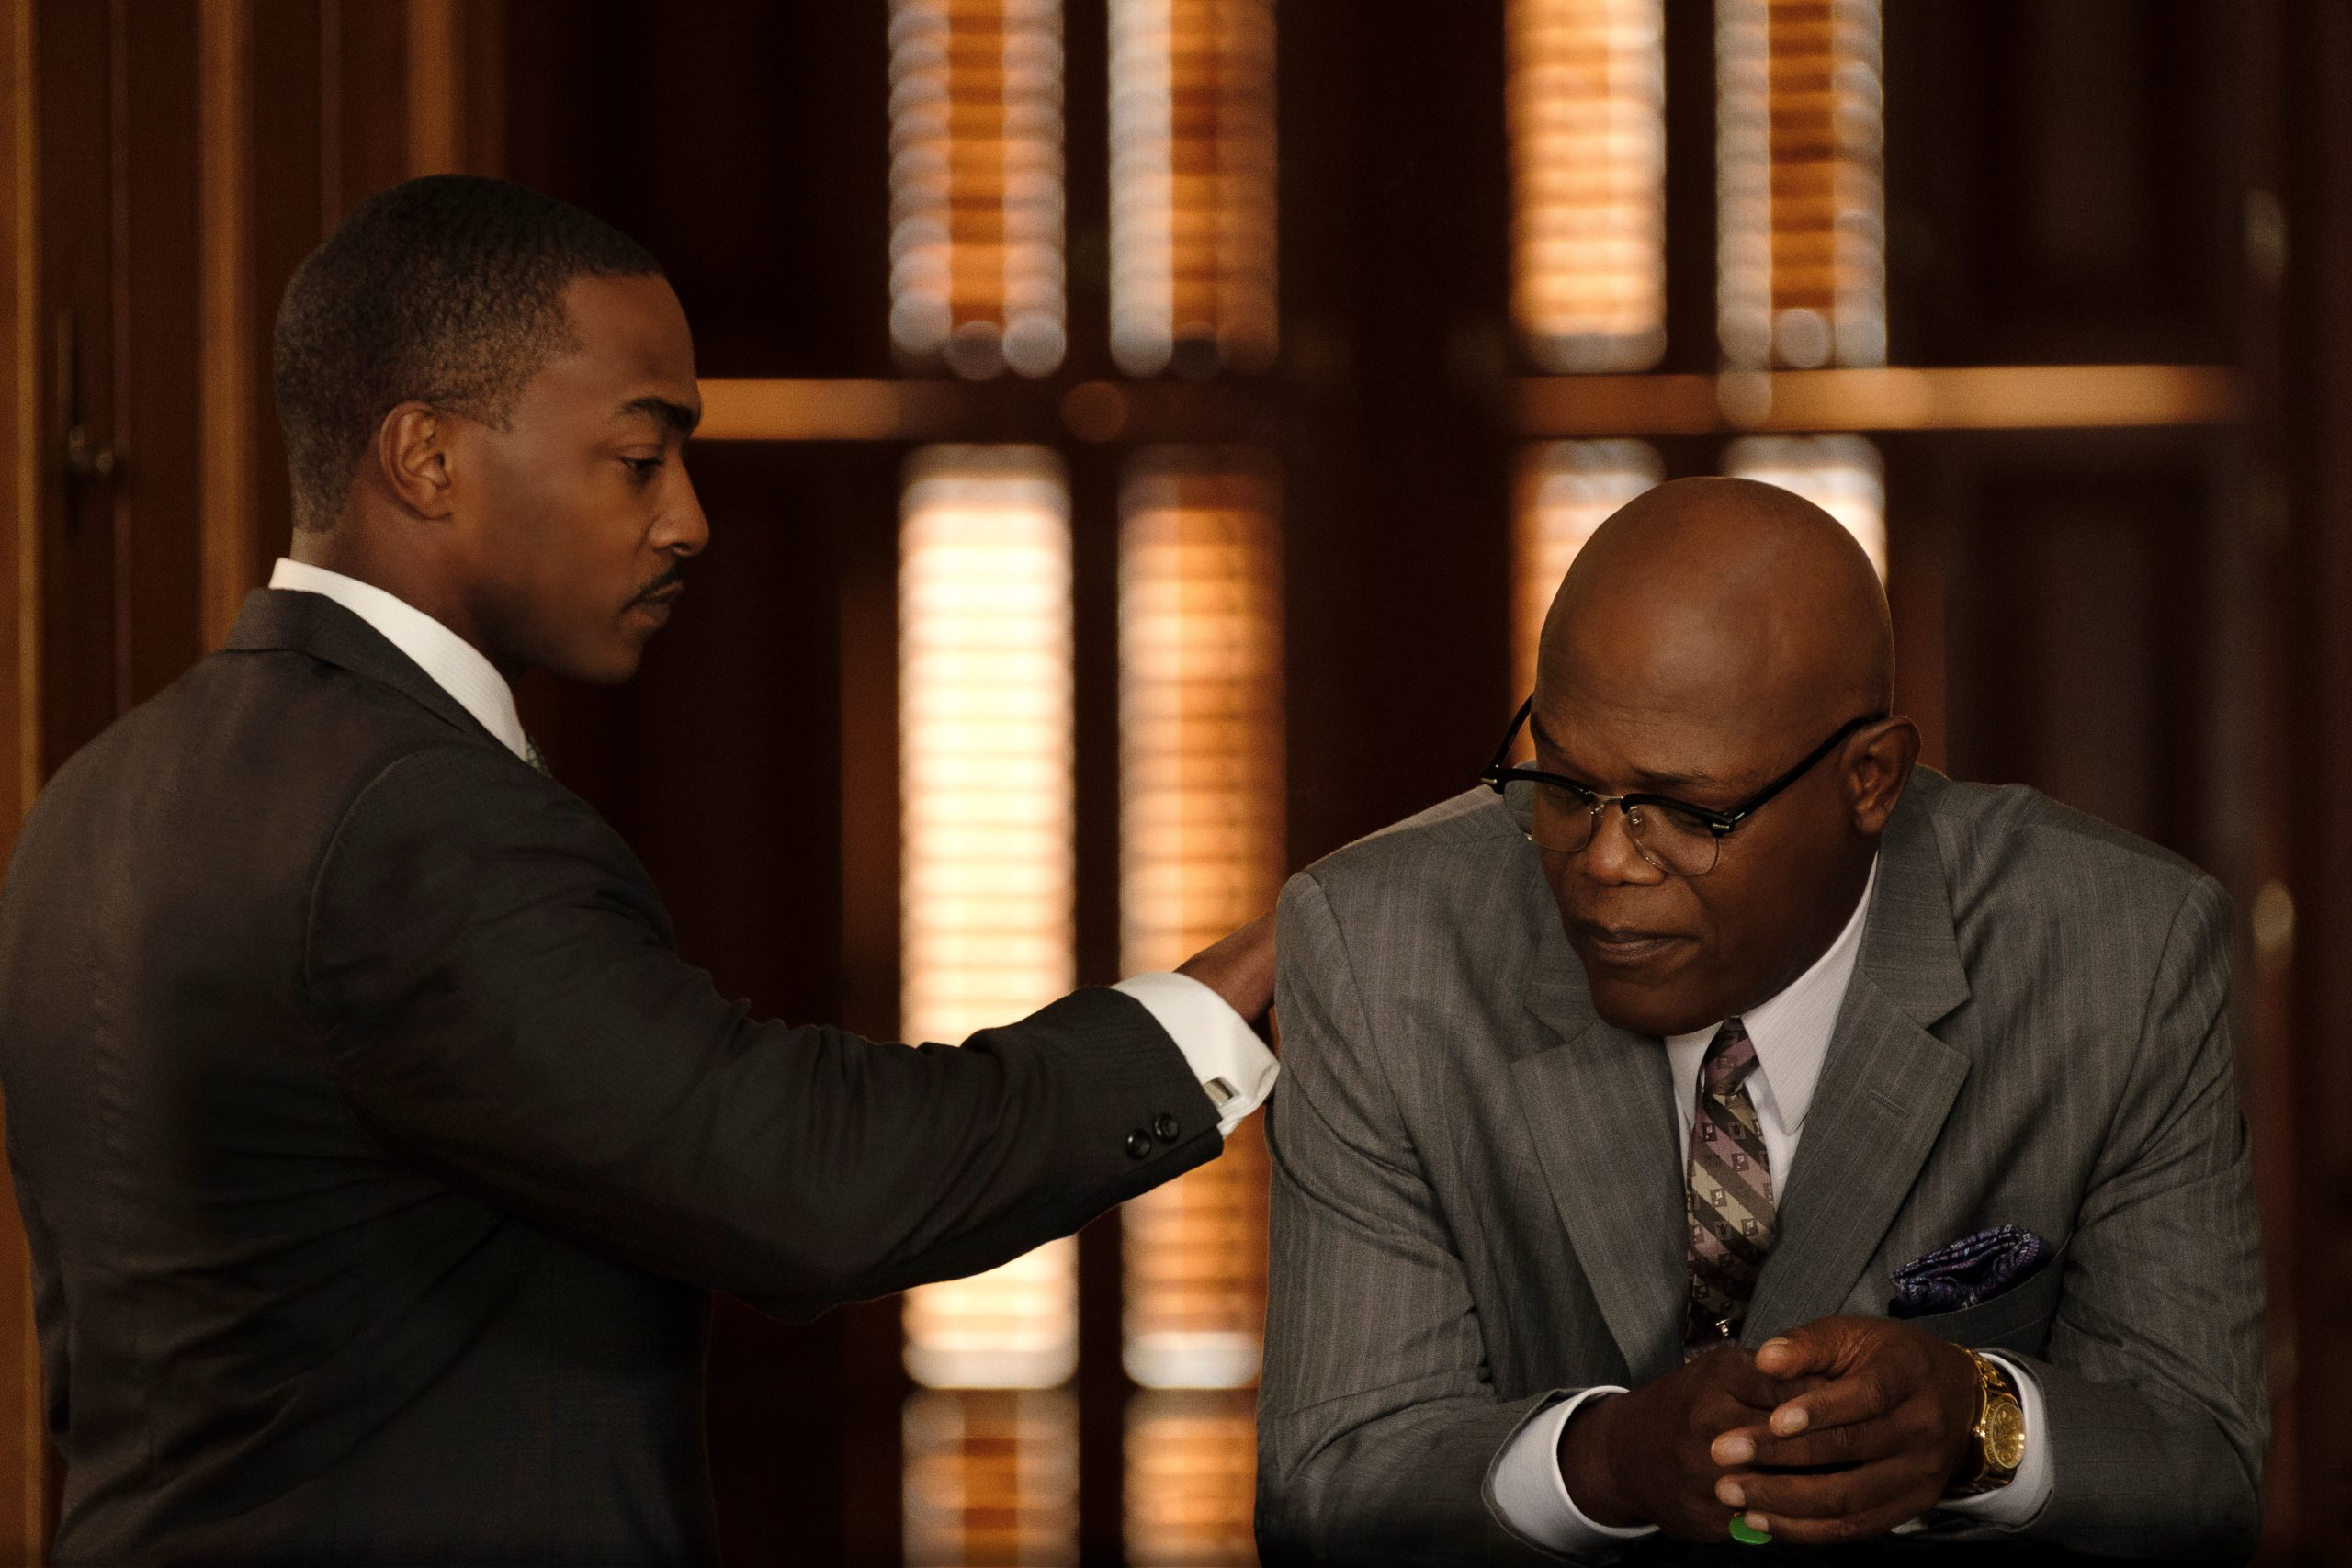 Anthony Mackie, left, and Samuel L. Jackson star in The Banker, out now on Apple TV+.